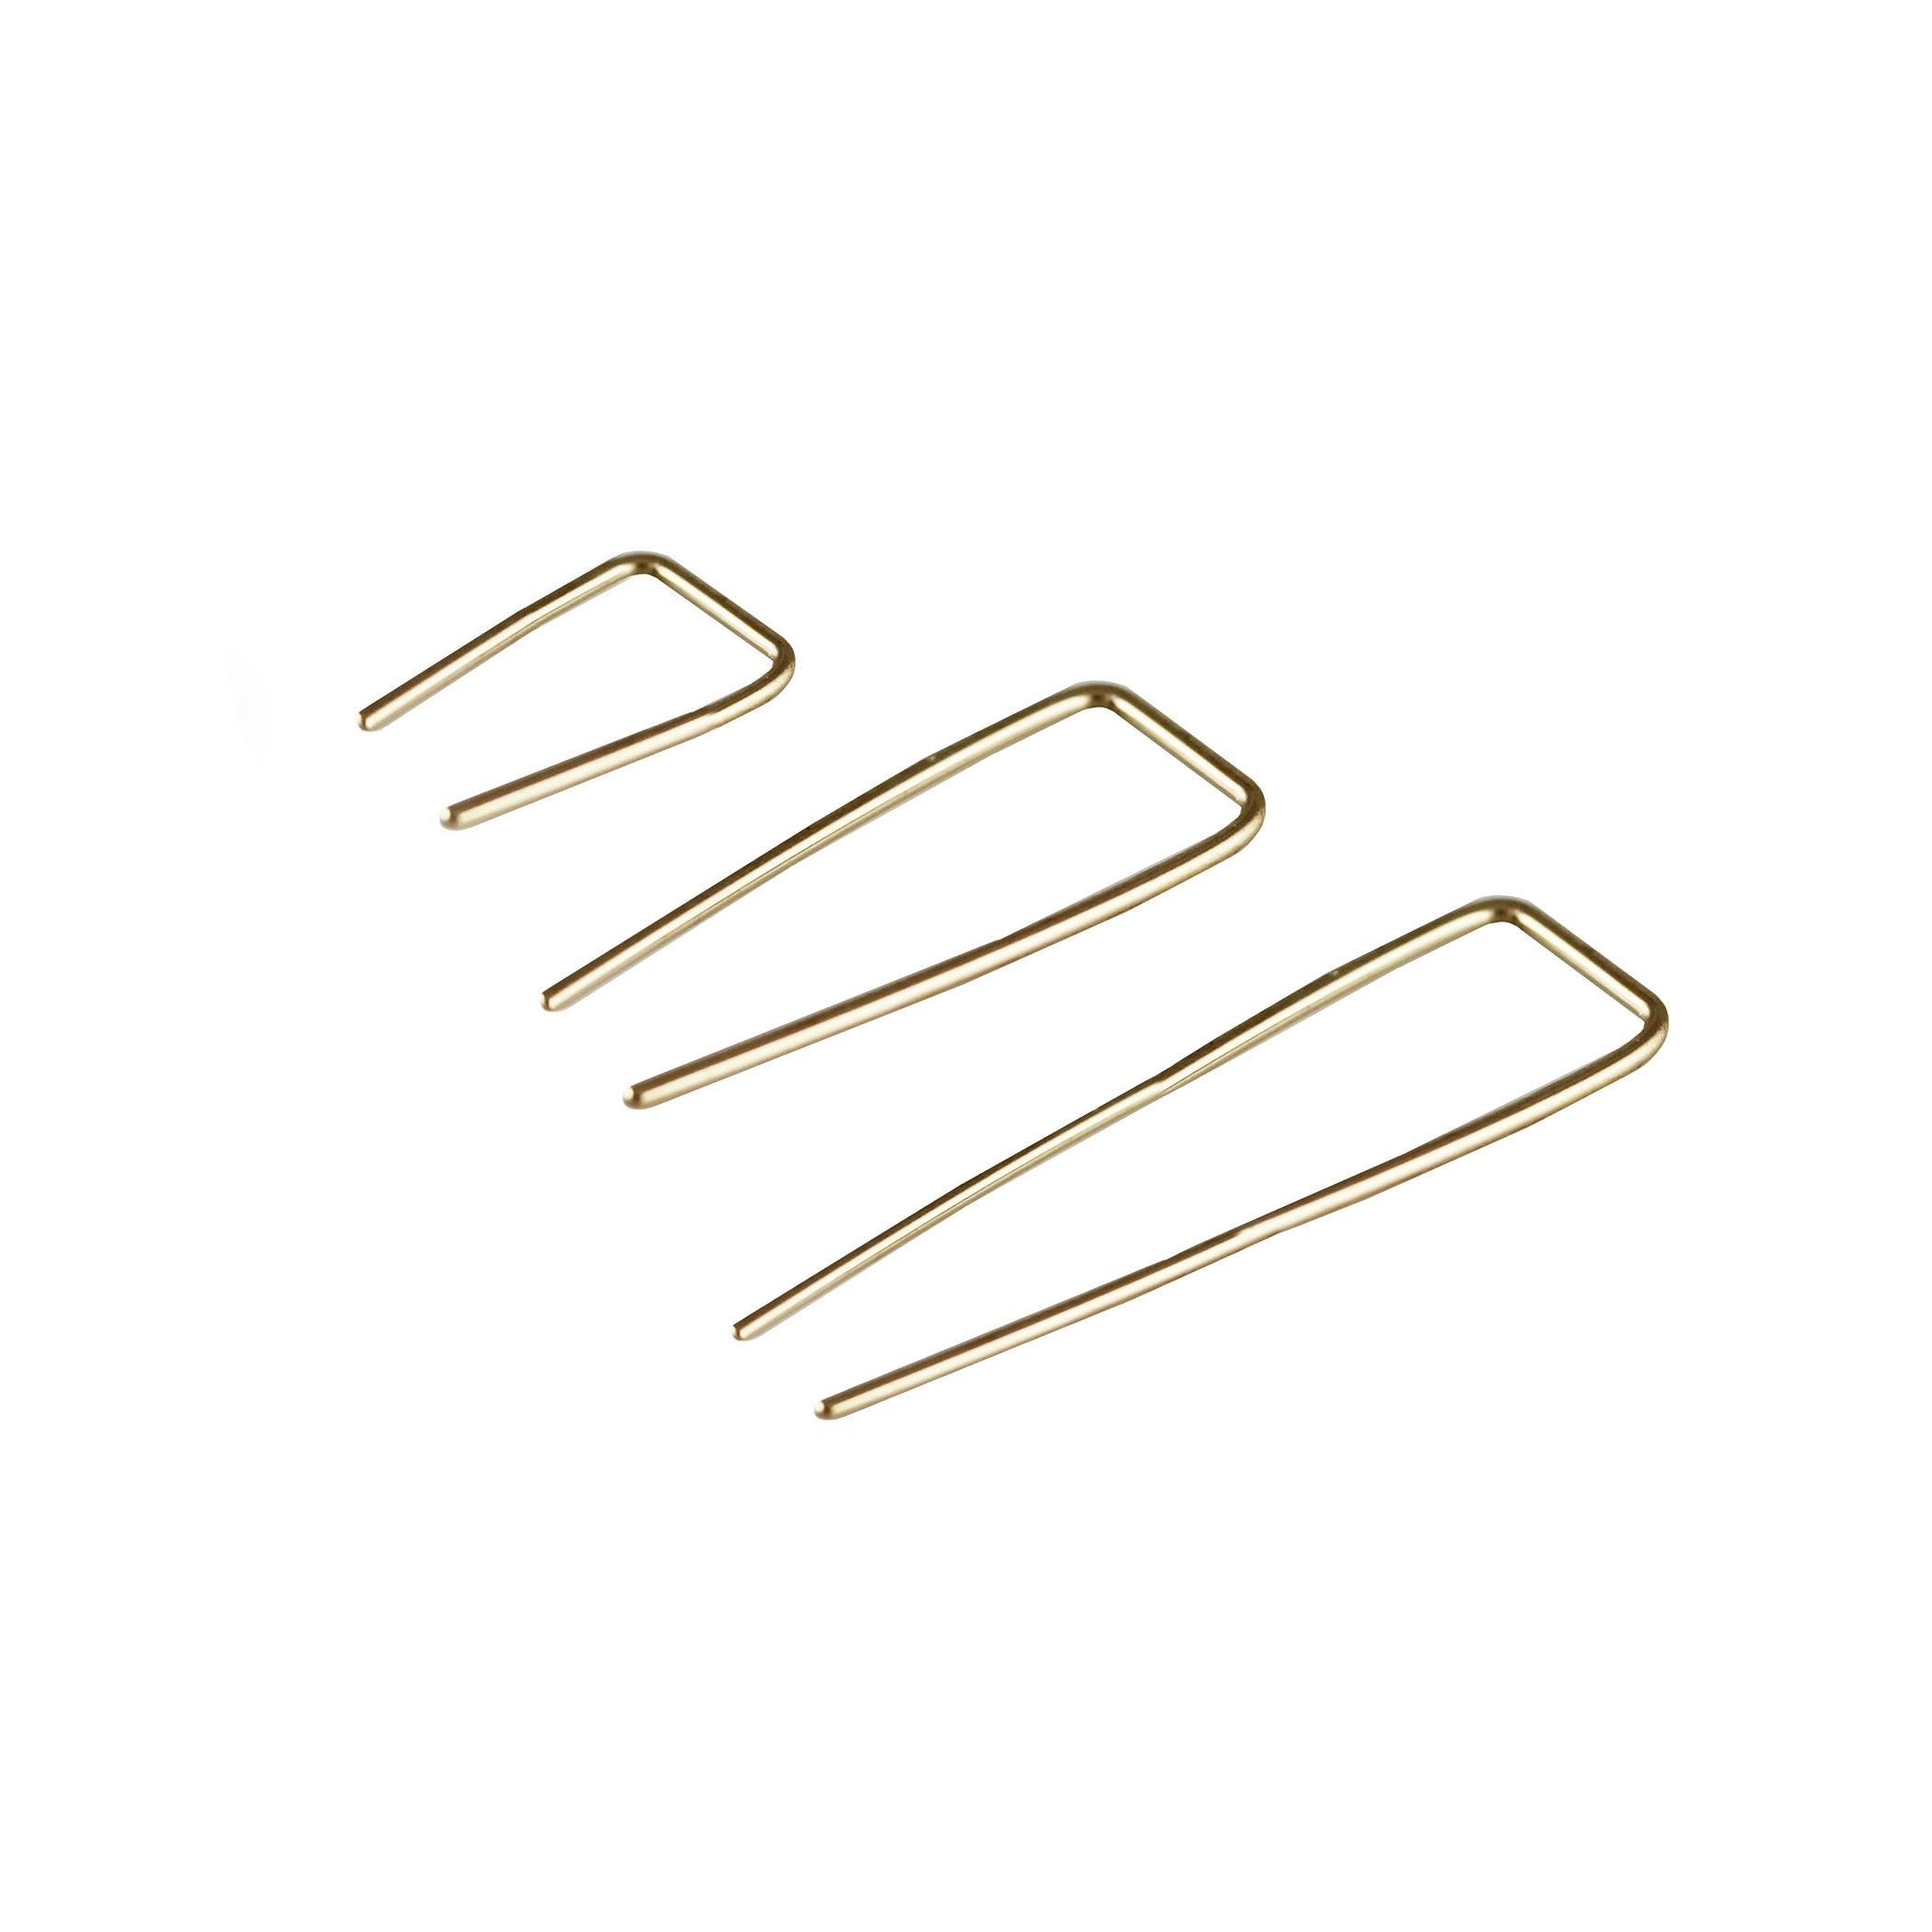 14K RECTANGLE WIRE HOOK EARRINGS